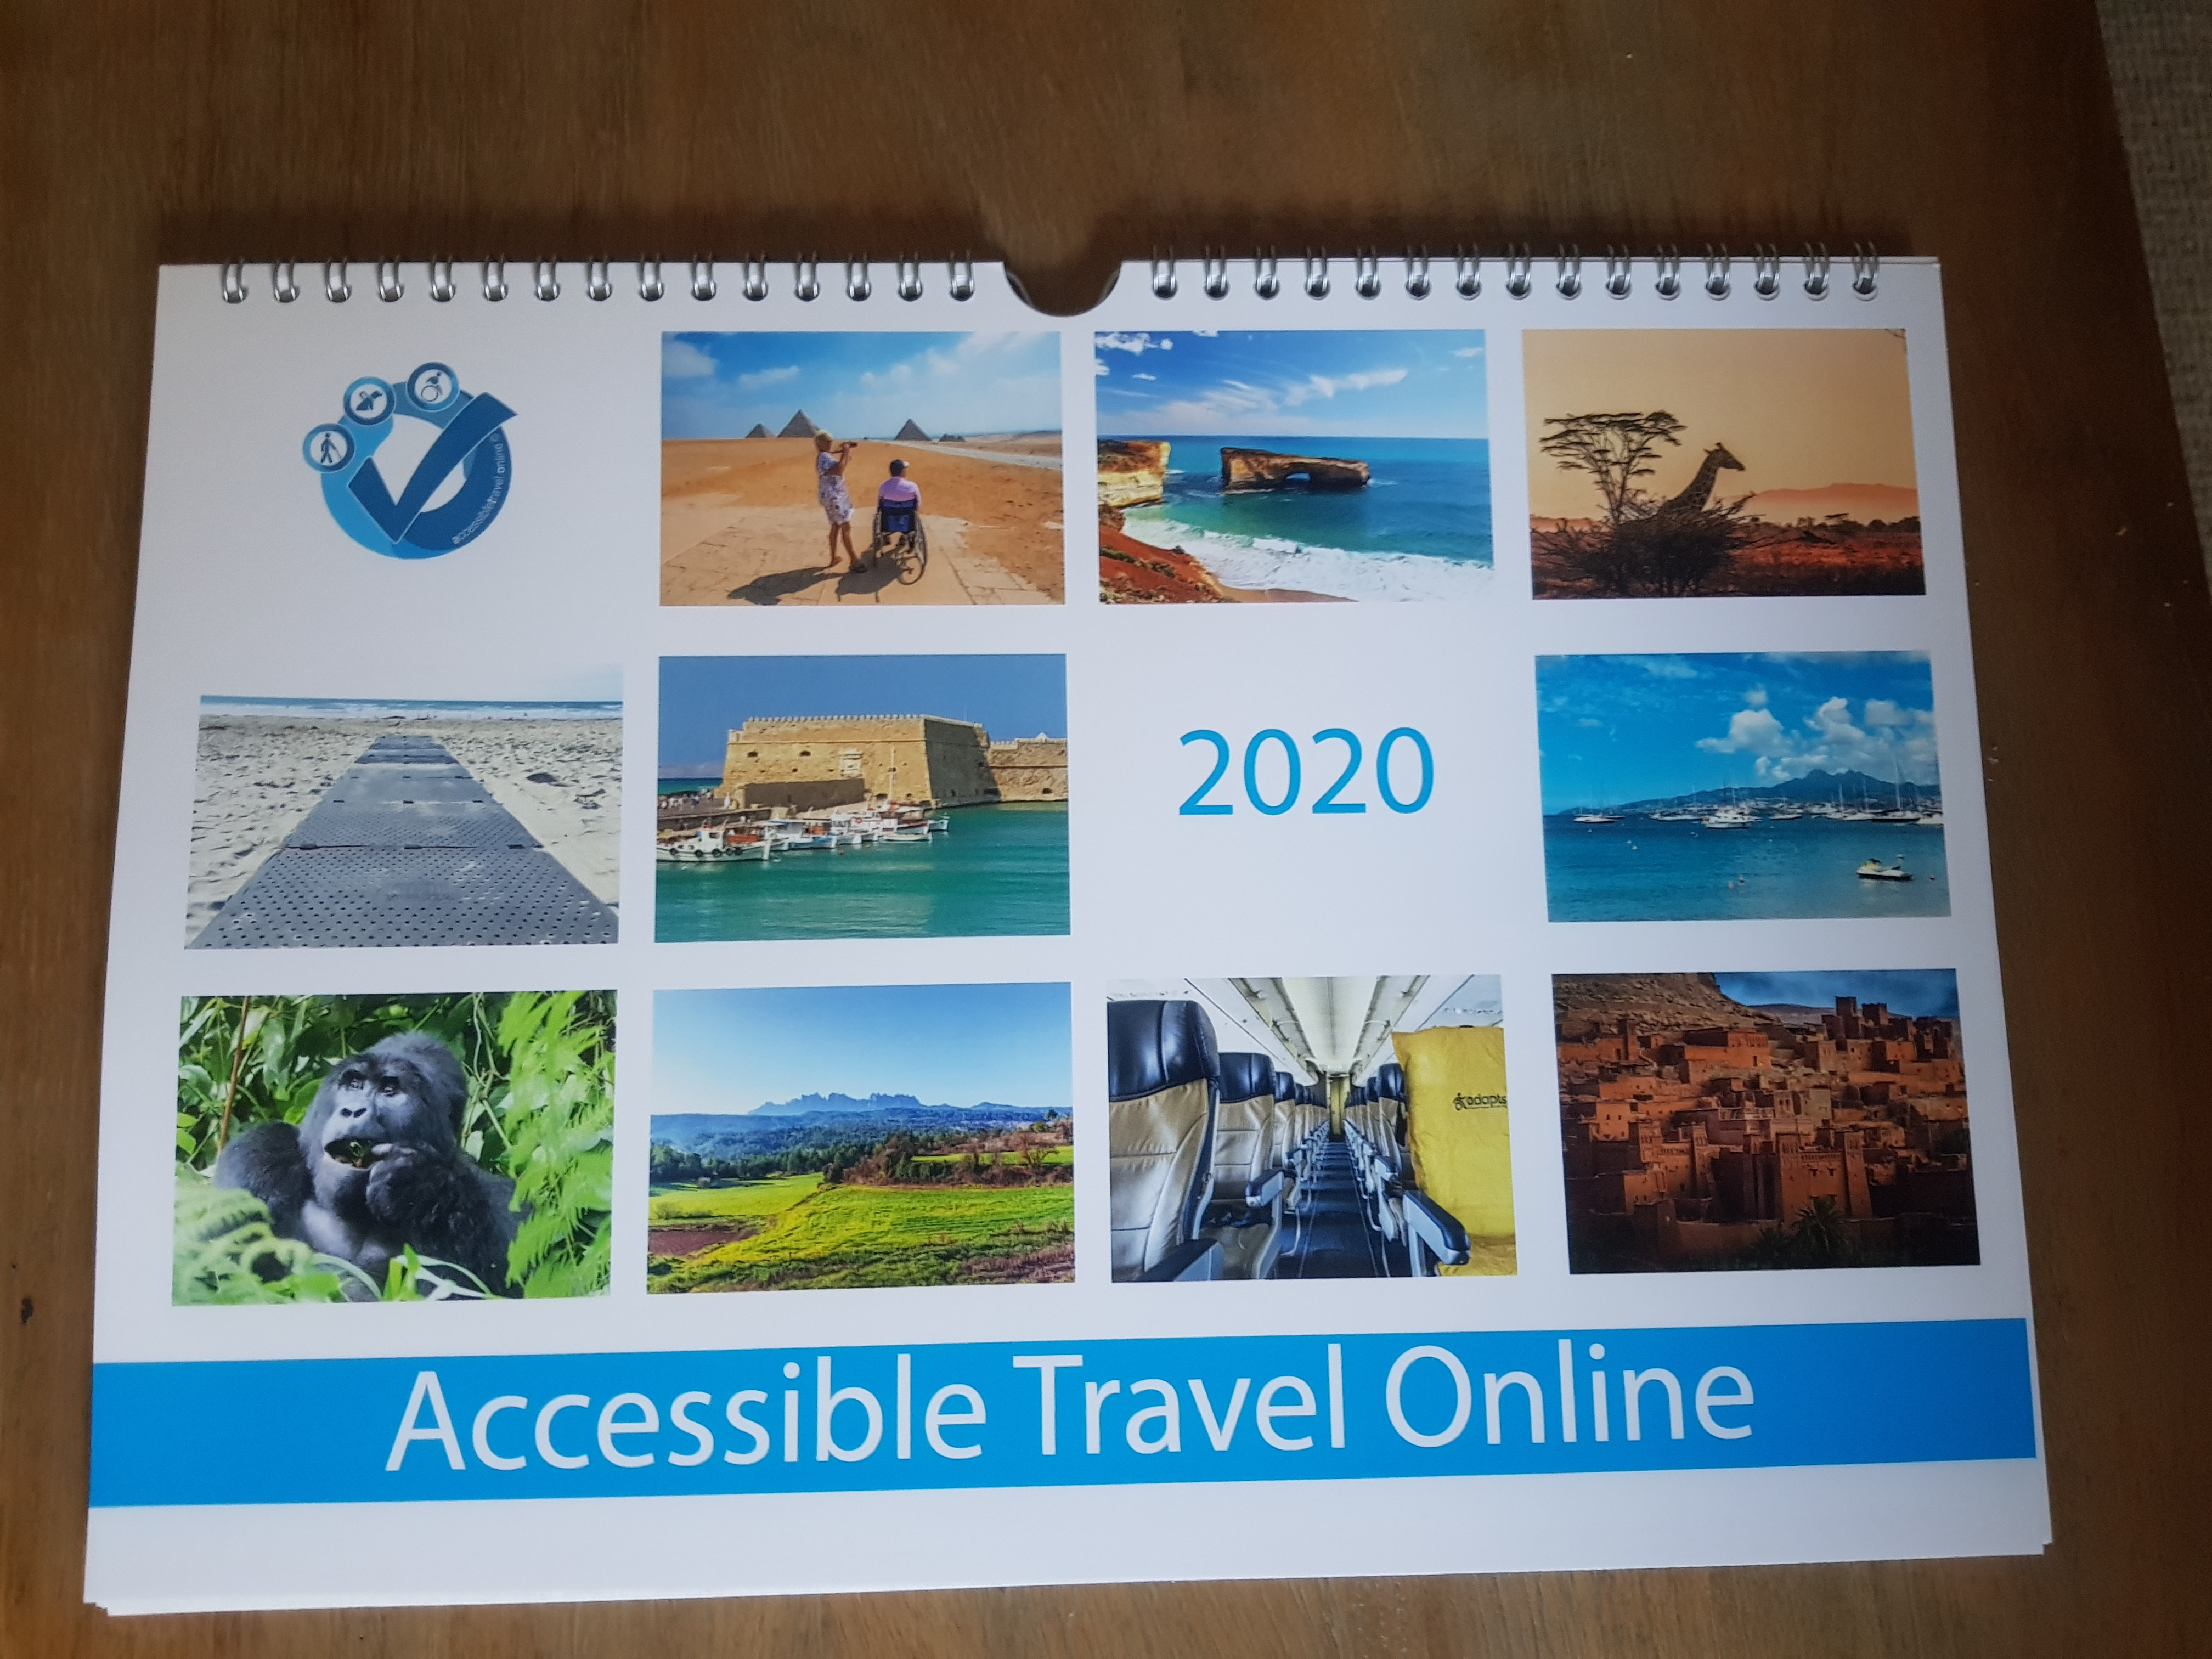 Accessible Travel Online calendar 2020